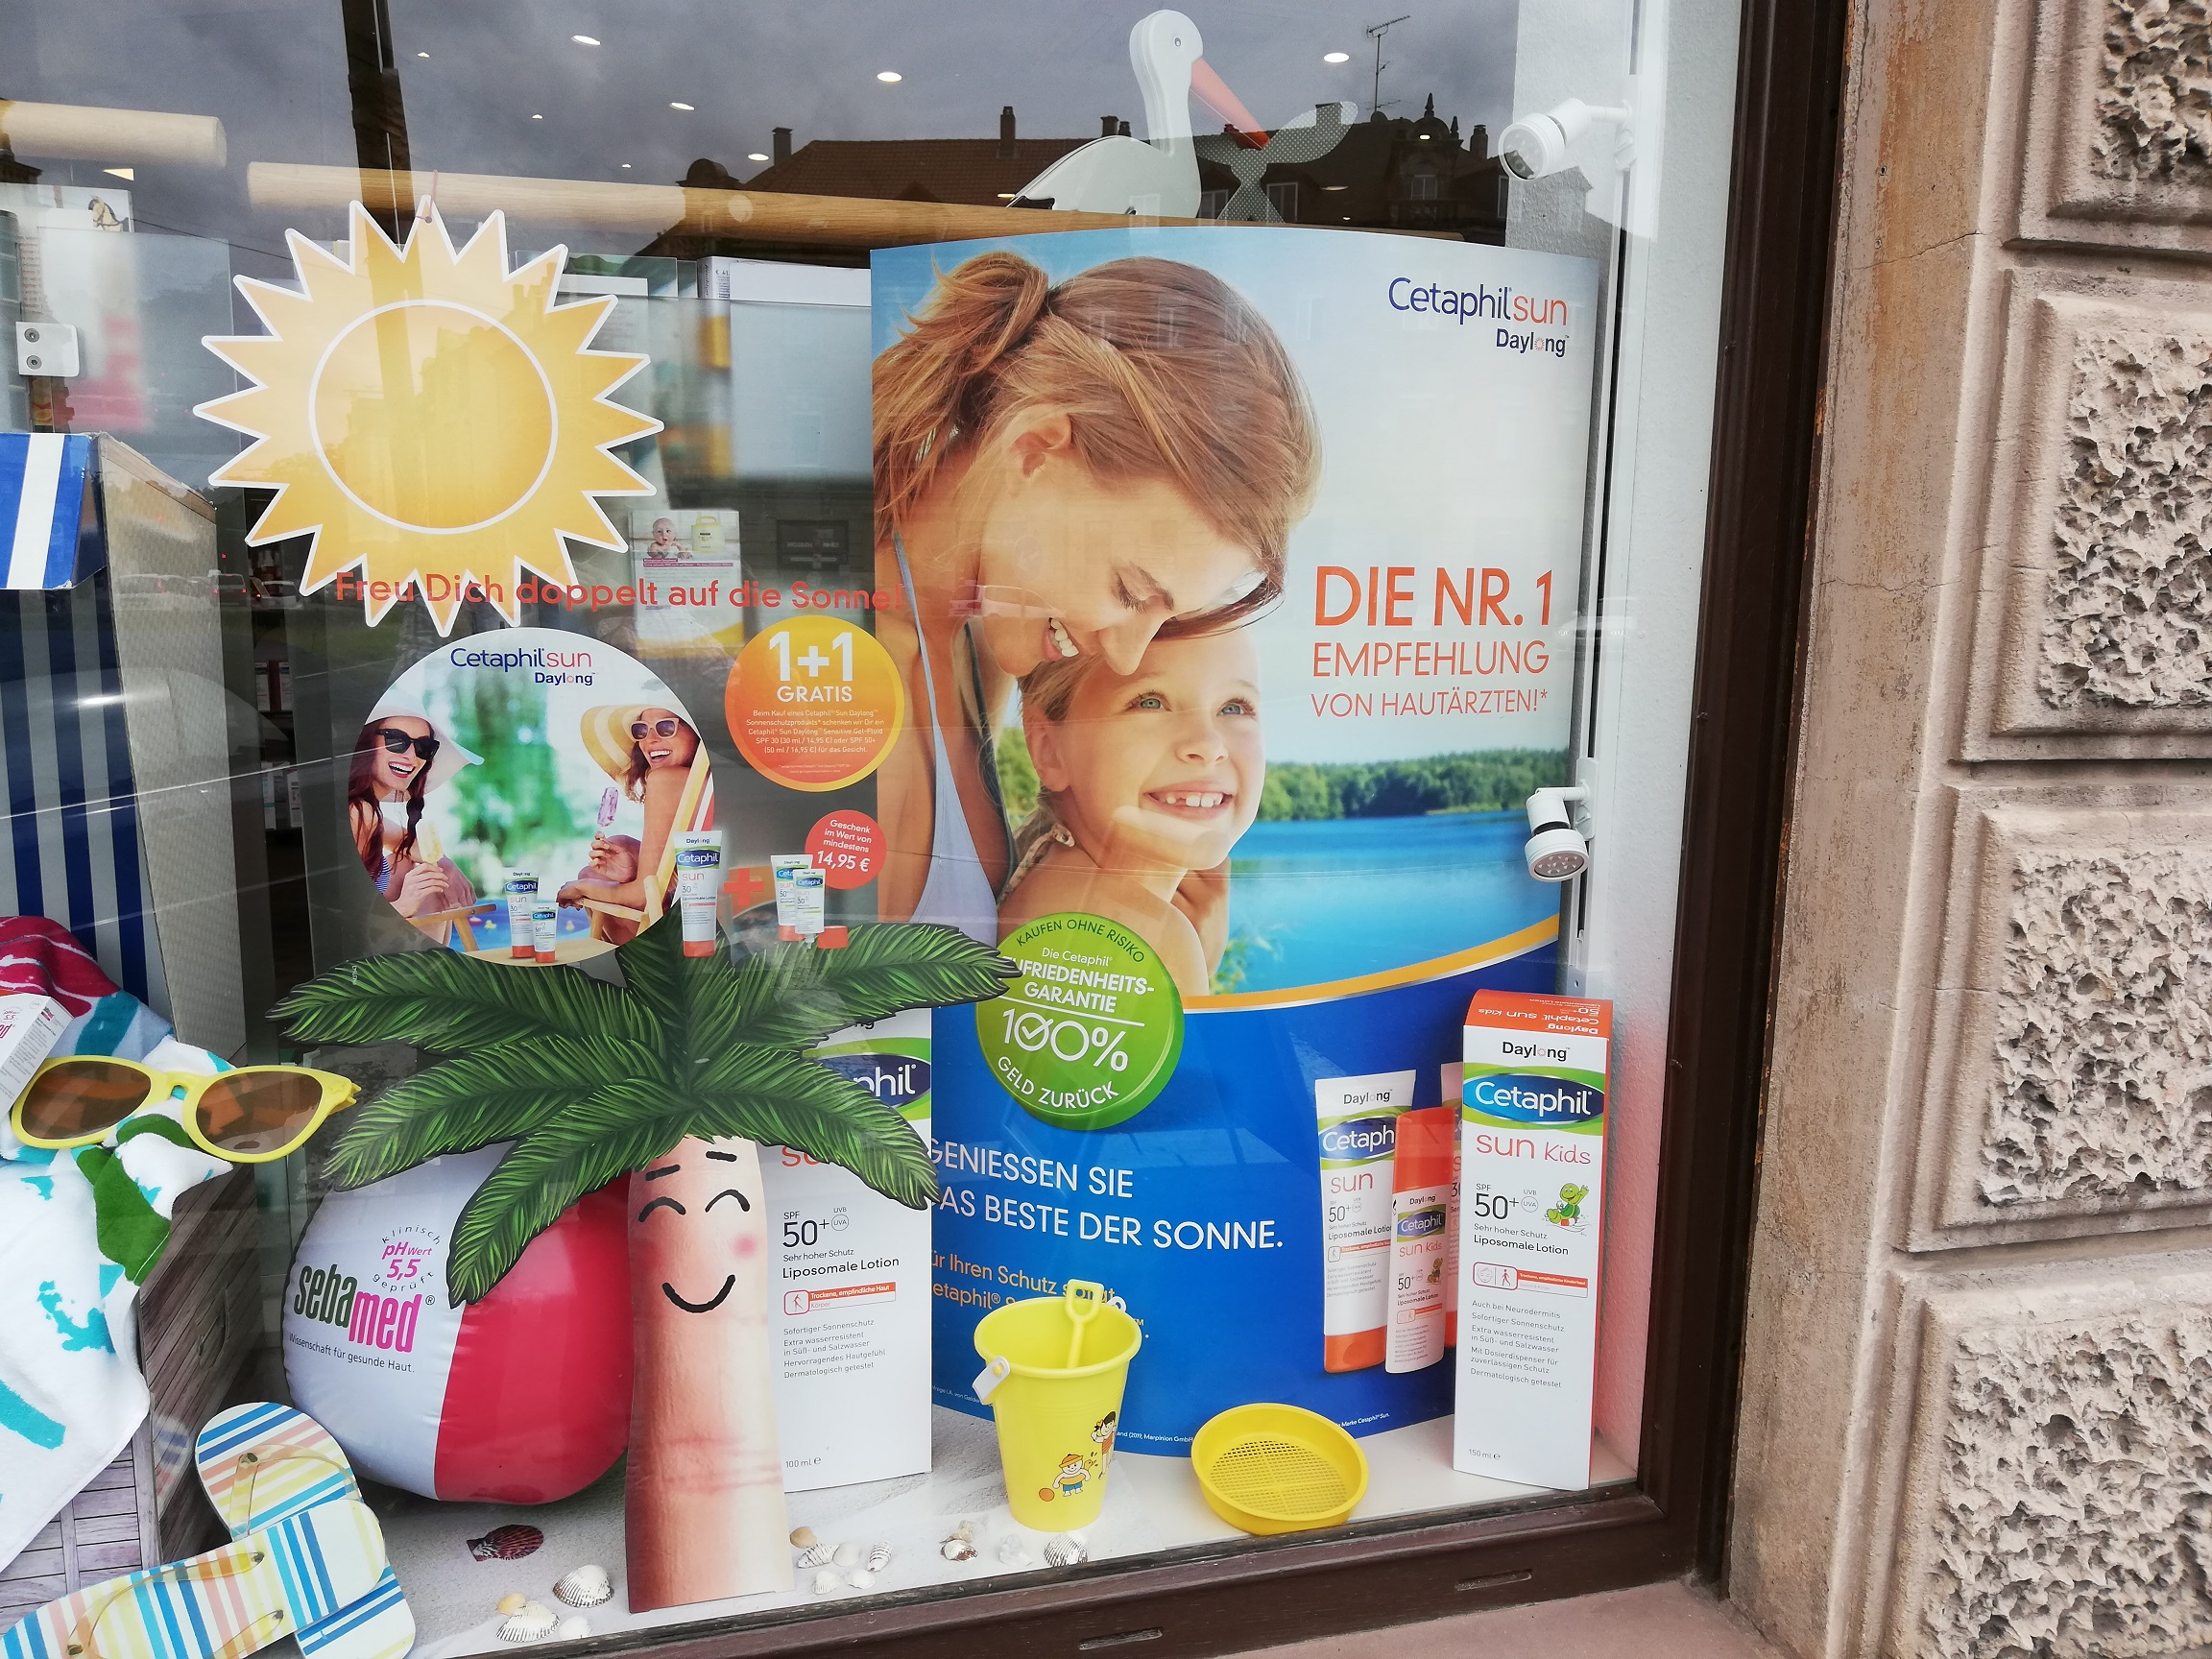 1 plus 1 Aktion mit Cetaphil Sun